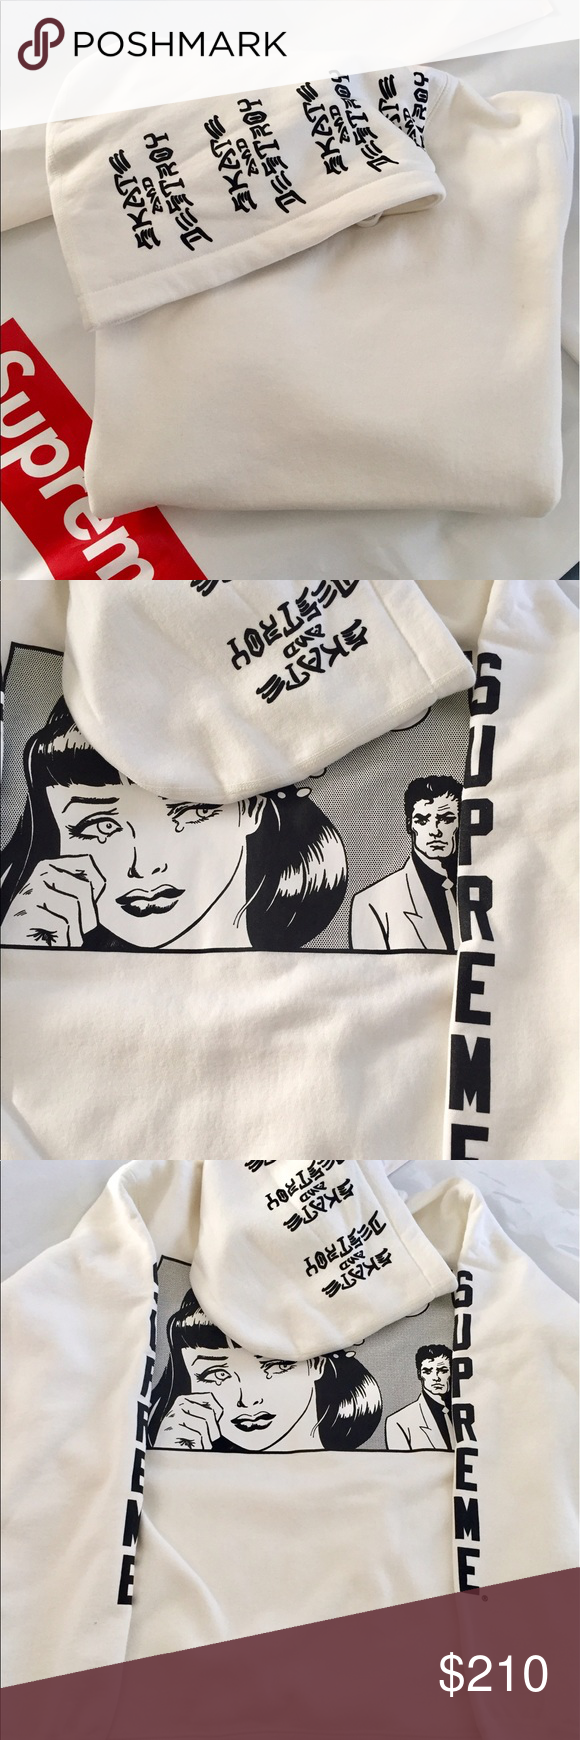 6bdf0f554a08 Supreme X Thrasher Boyfriend Hoodie Beautiful White Hoodie. True to size